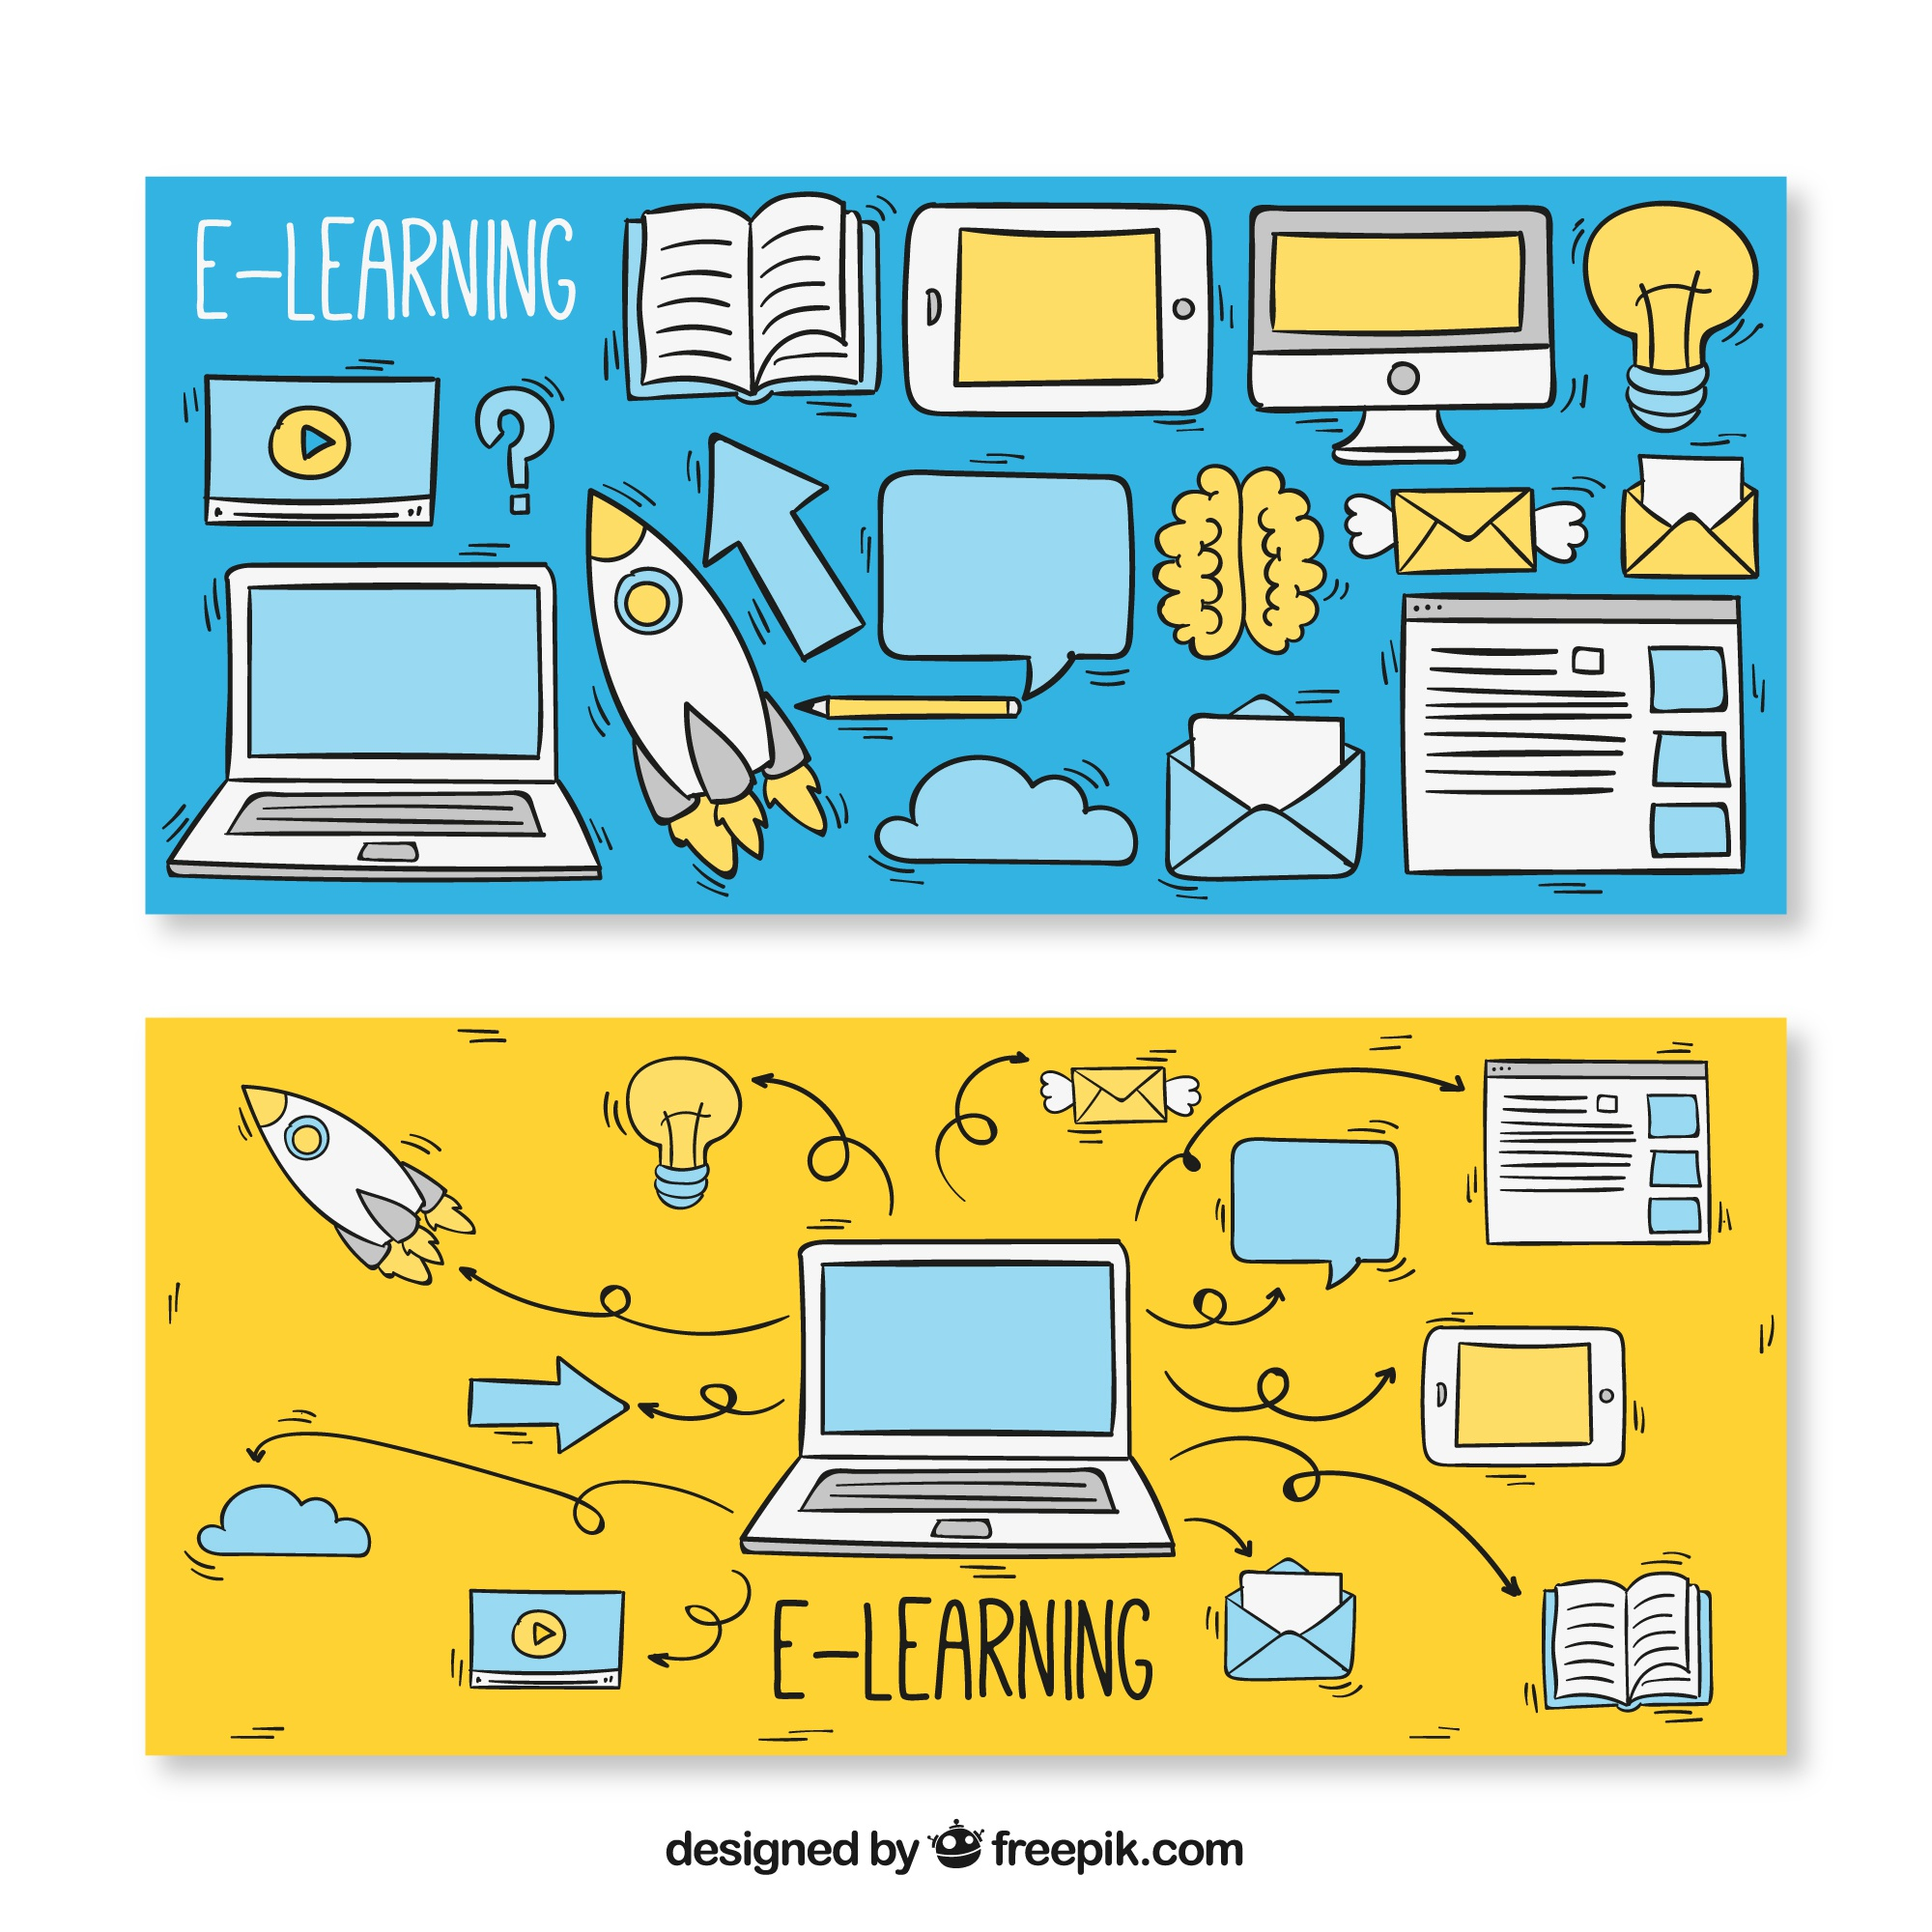 Sketch banners for e-learning elements